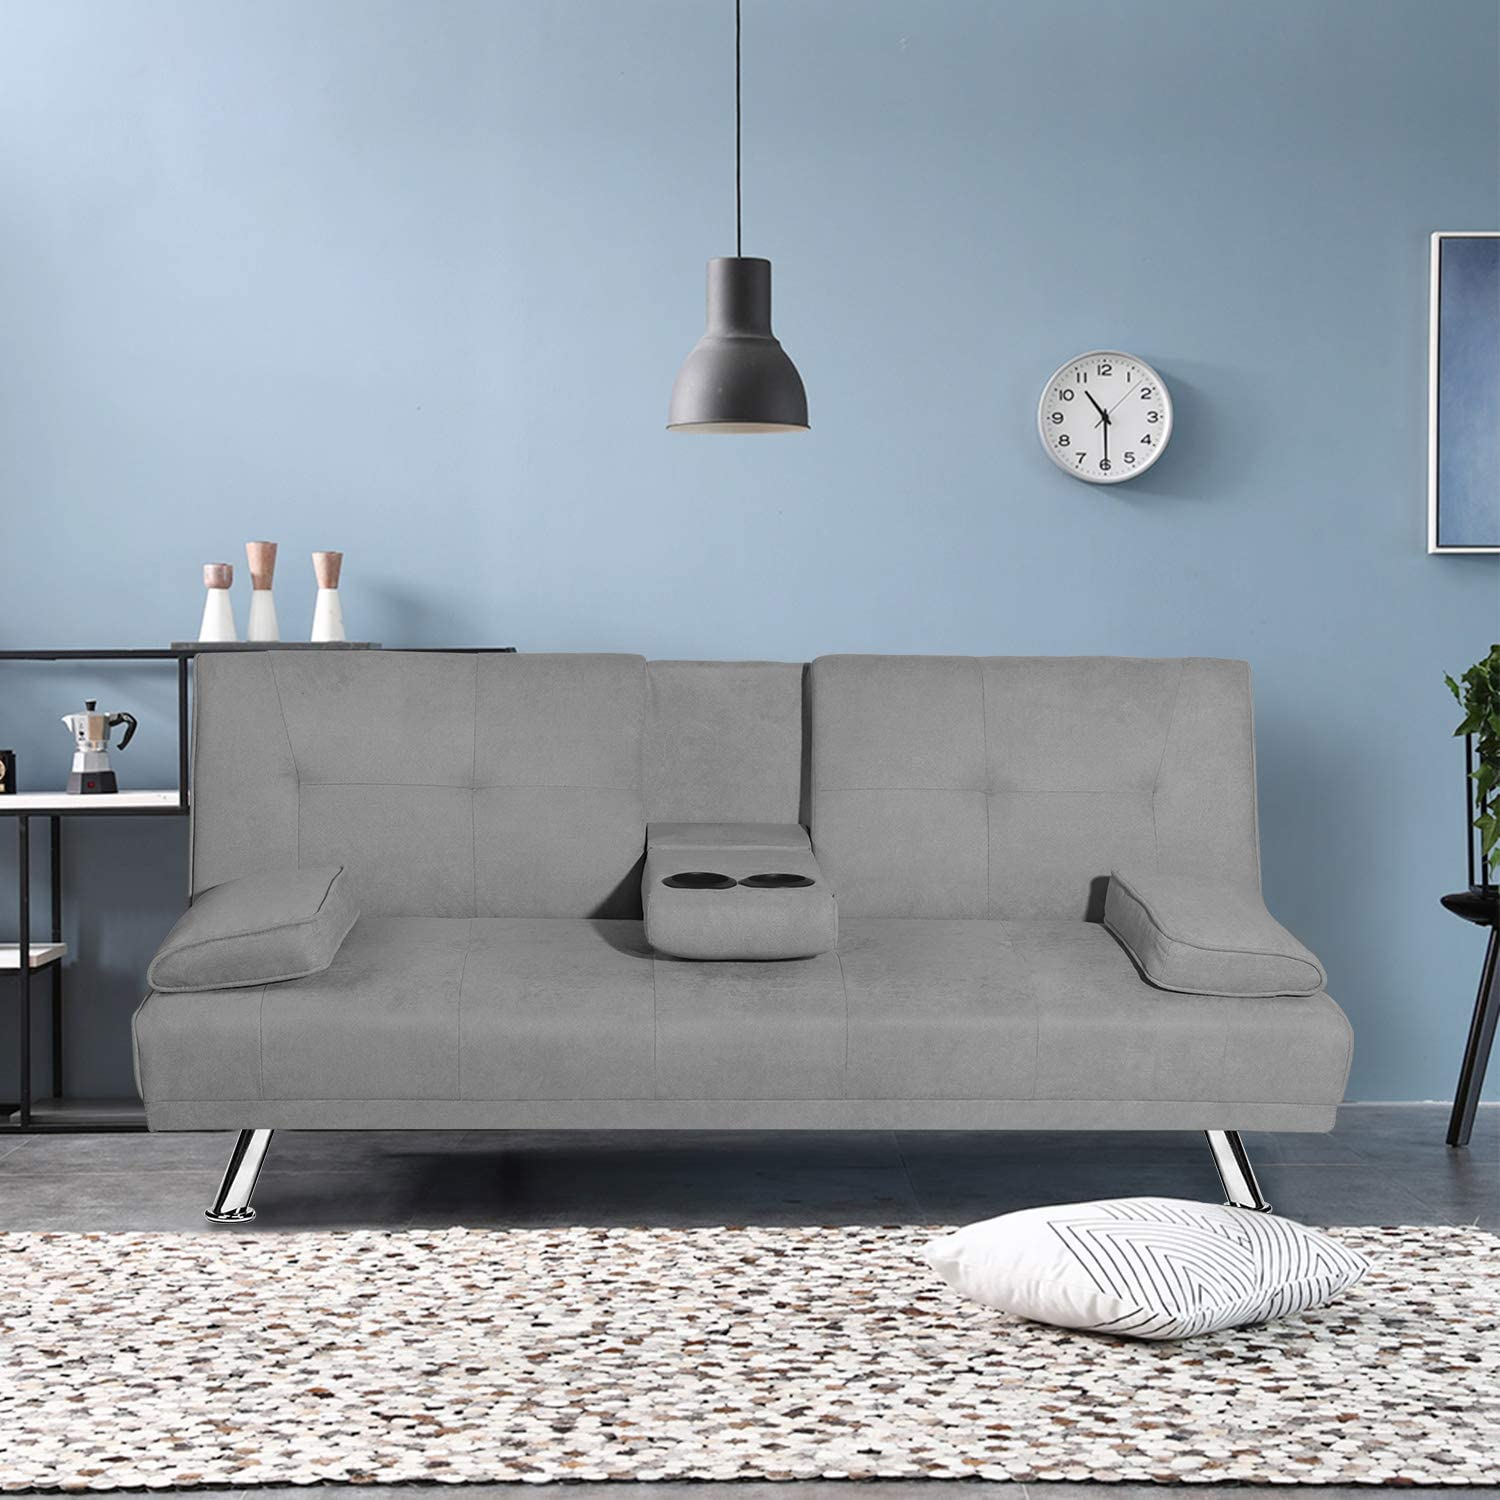 MOOSENG Futon Sofa Bed for Living Room Fold Up & Down Recliner Couch w/Metal Legs and 2 Cup Holders Convertible Love Seat Home Furniture for Apartment Essential, Light Gray